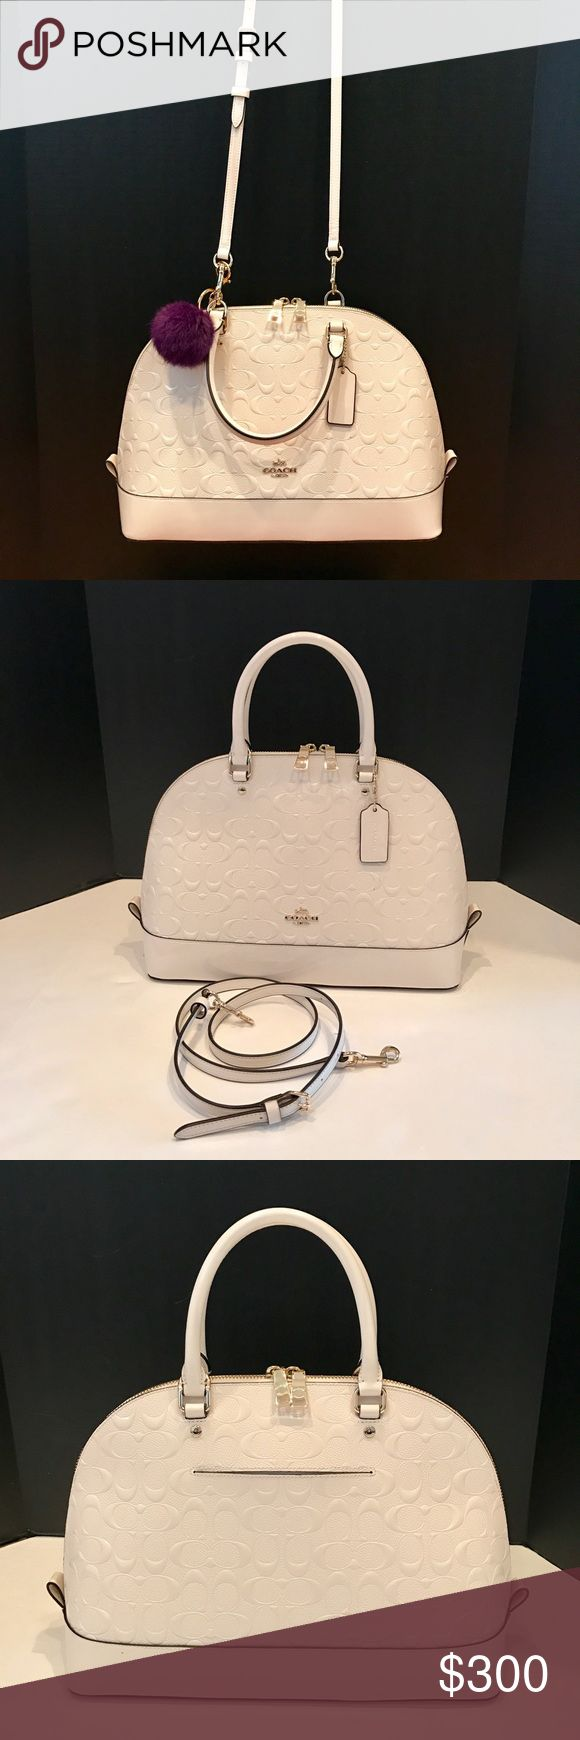 """Coach CrossBody Satchel Ivory signature satchel with removable cross body strap. Gorgeous color that looks striking while using the handles on your arm or as a cross body purse. Cloth interior has 1 zip and 2 slip pockets (oops, will add that photo!). Exterior has a back slip pocket. Brand new condition, just one tiny mark on front below Coach tag in pic #4. Handle drop 4"""". Strap drop about 15-24"""". Coach Bags Crossbody Bags"""